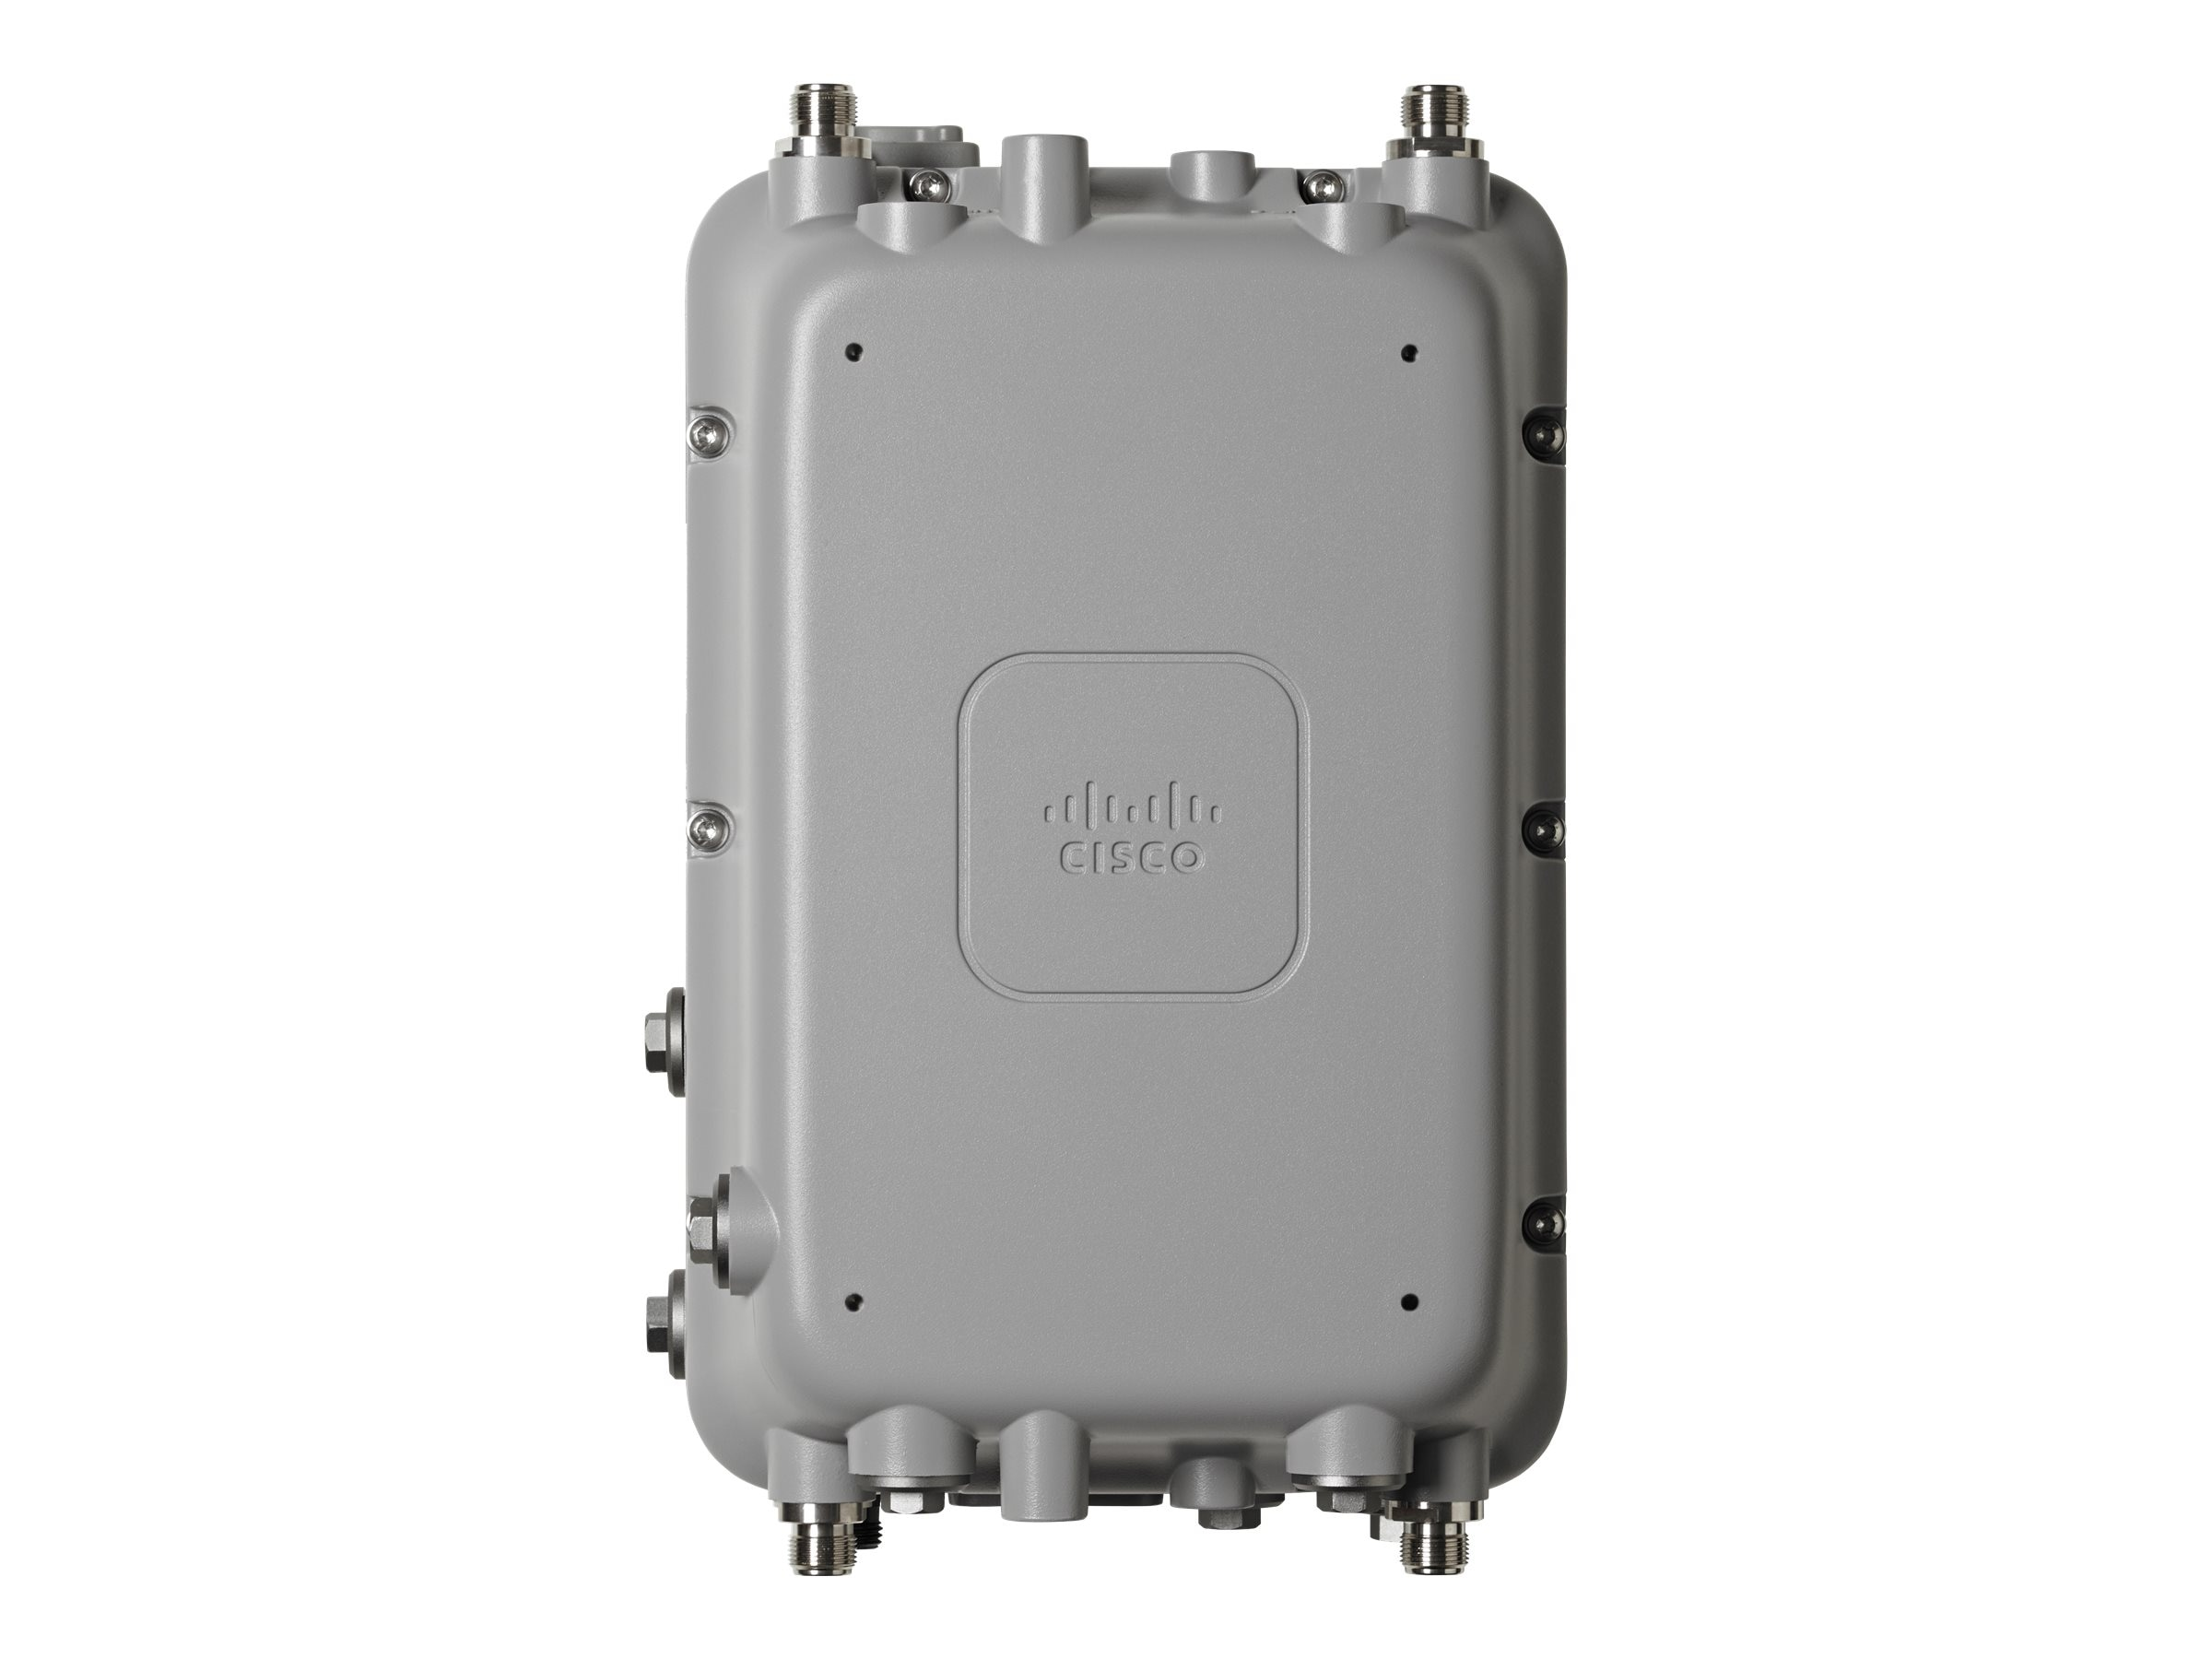 Cisco AIR-AP1572EC1-T-K9 Image 4